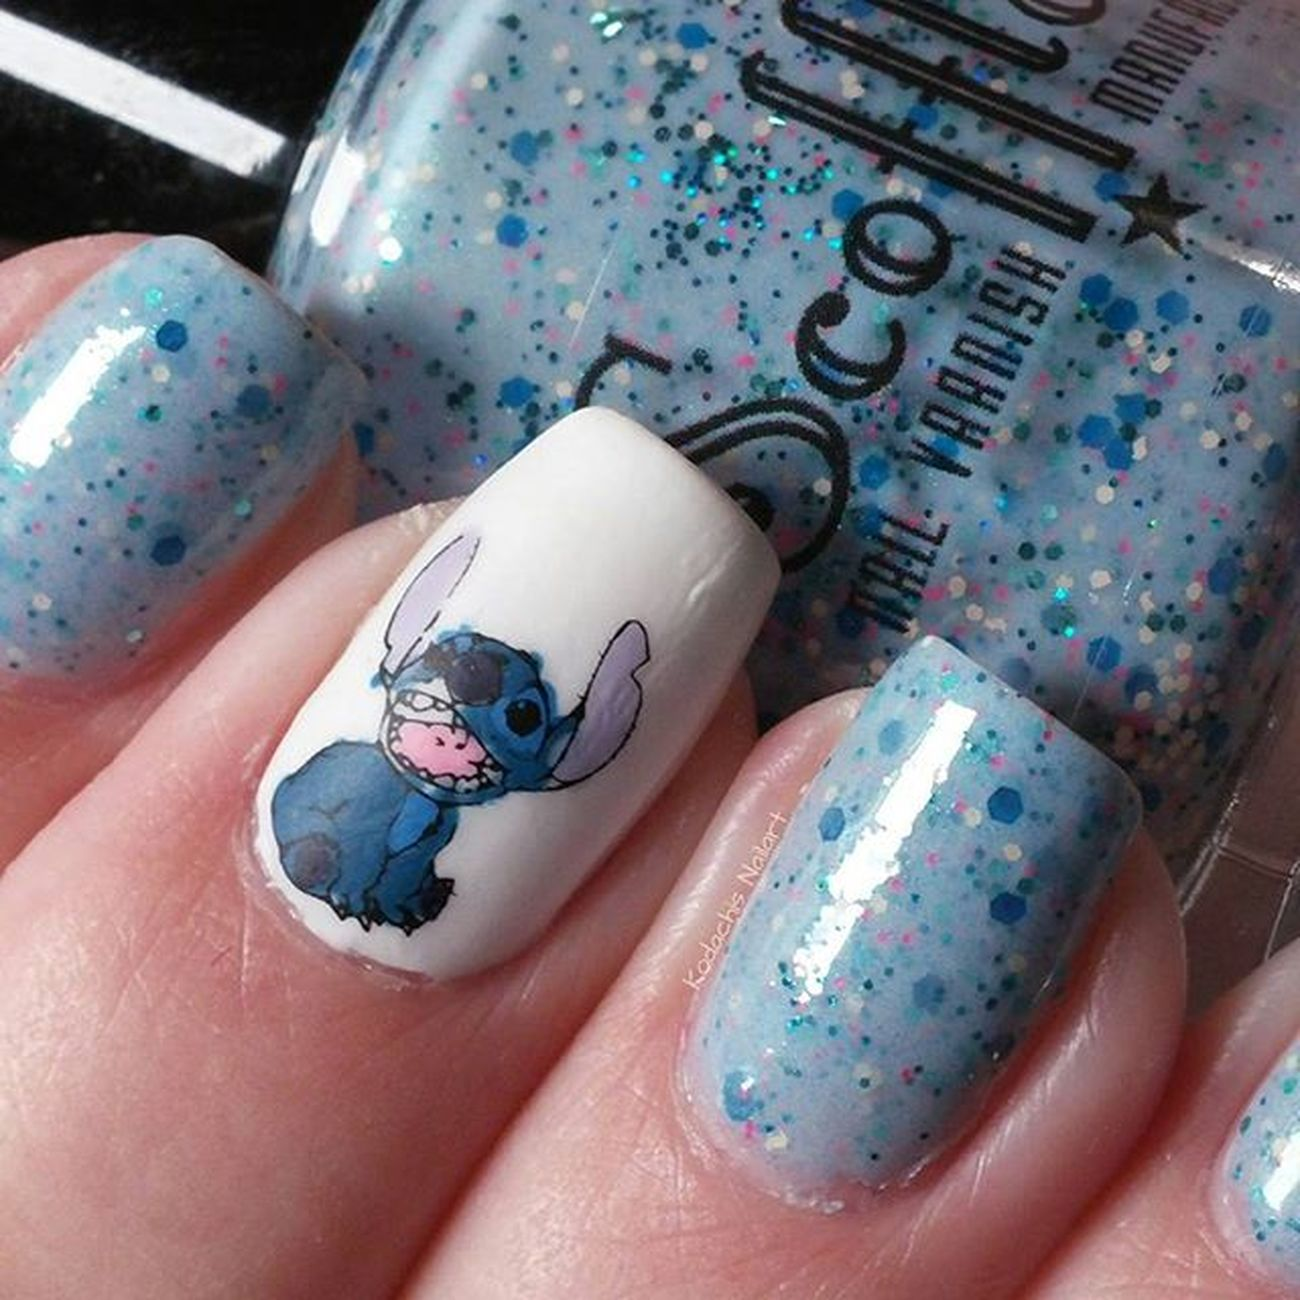 Scofflawvarnish - Fluffy battle bunny und ein Stitch decal aus Essie Farben Notd Itrustindiepolish Essieliebe